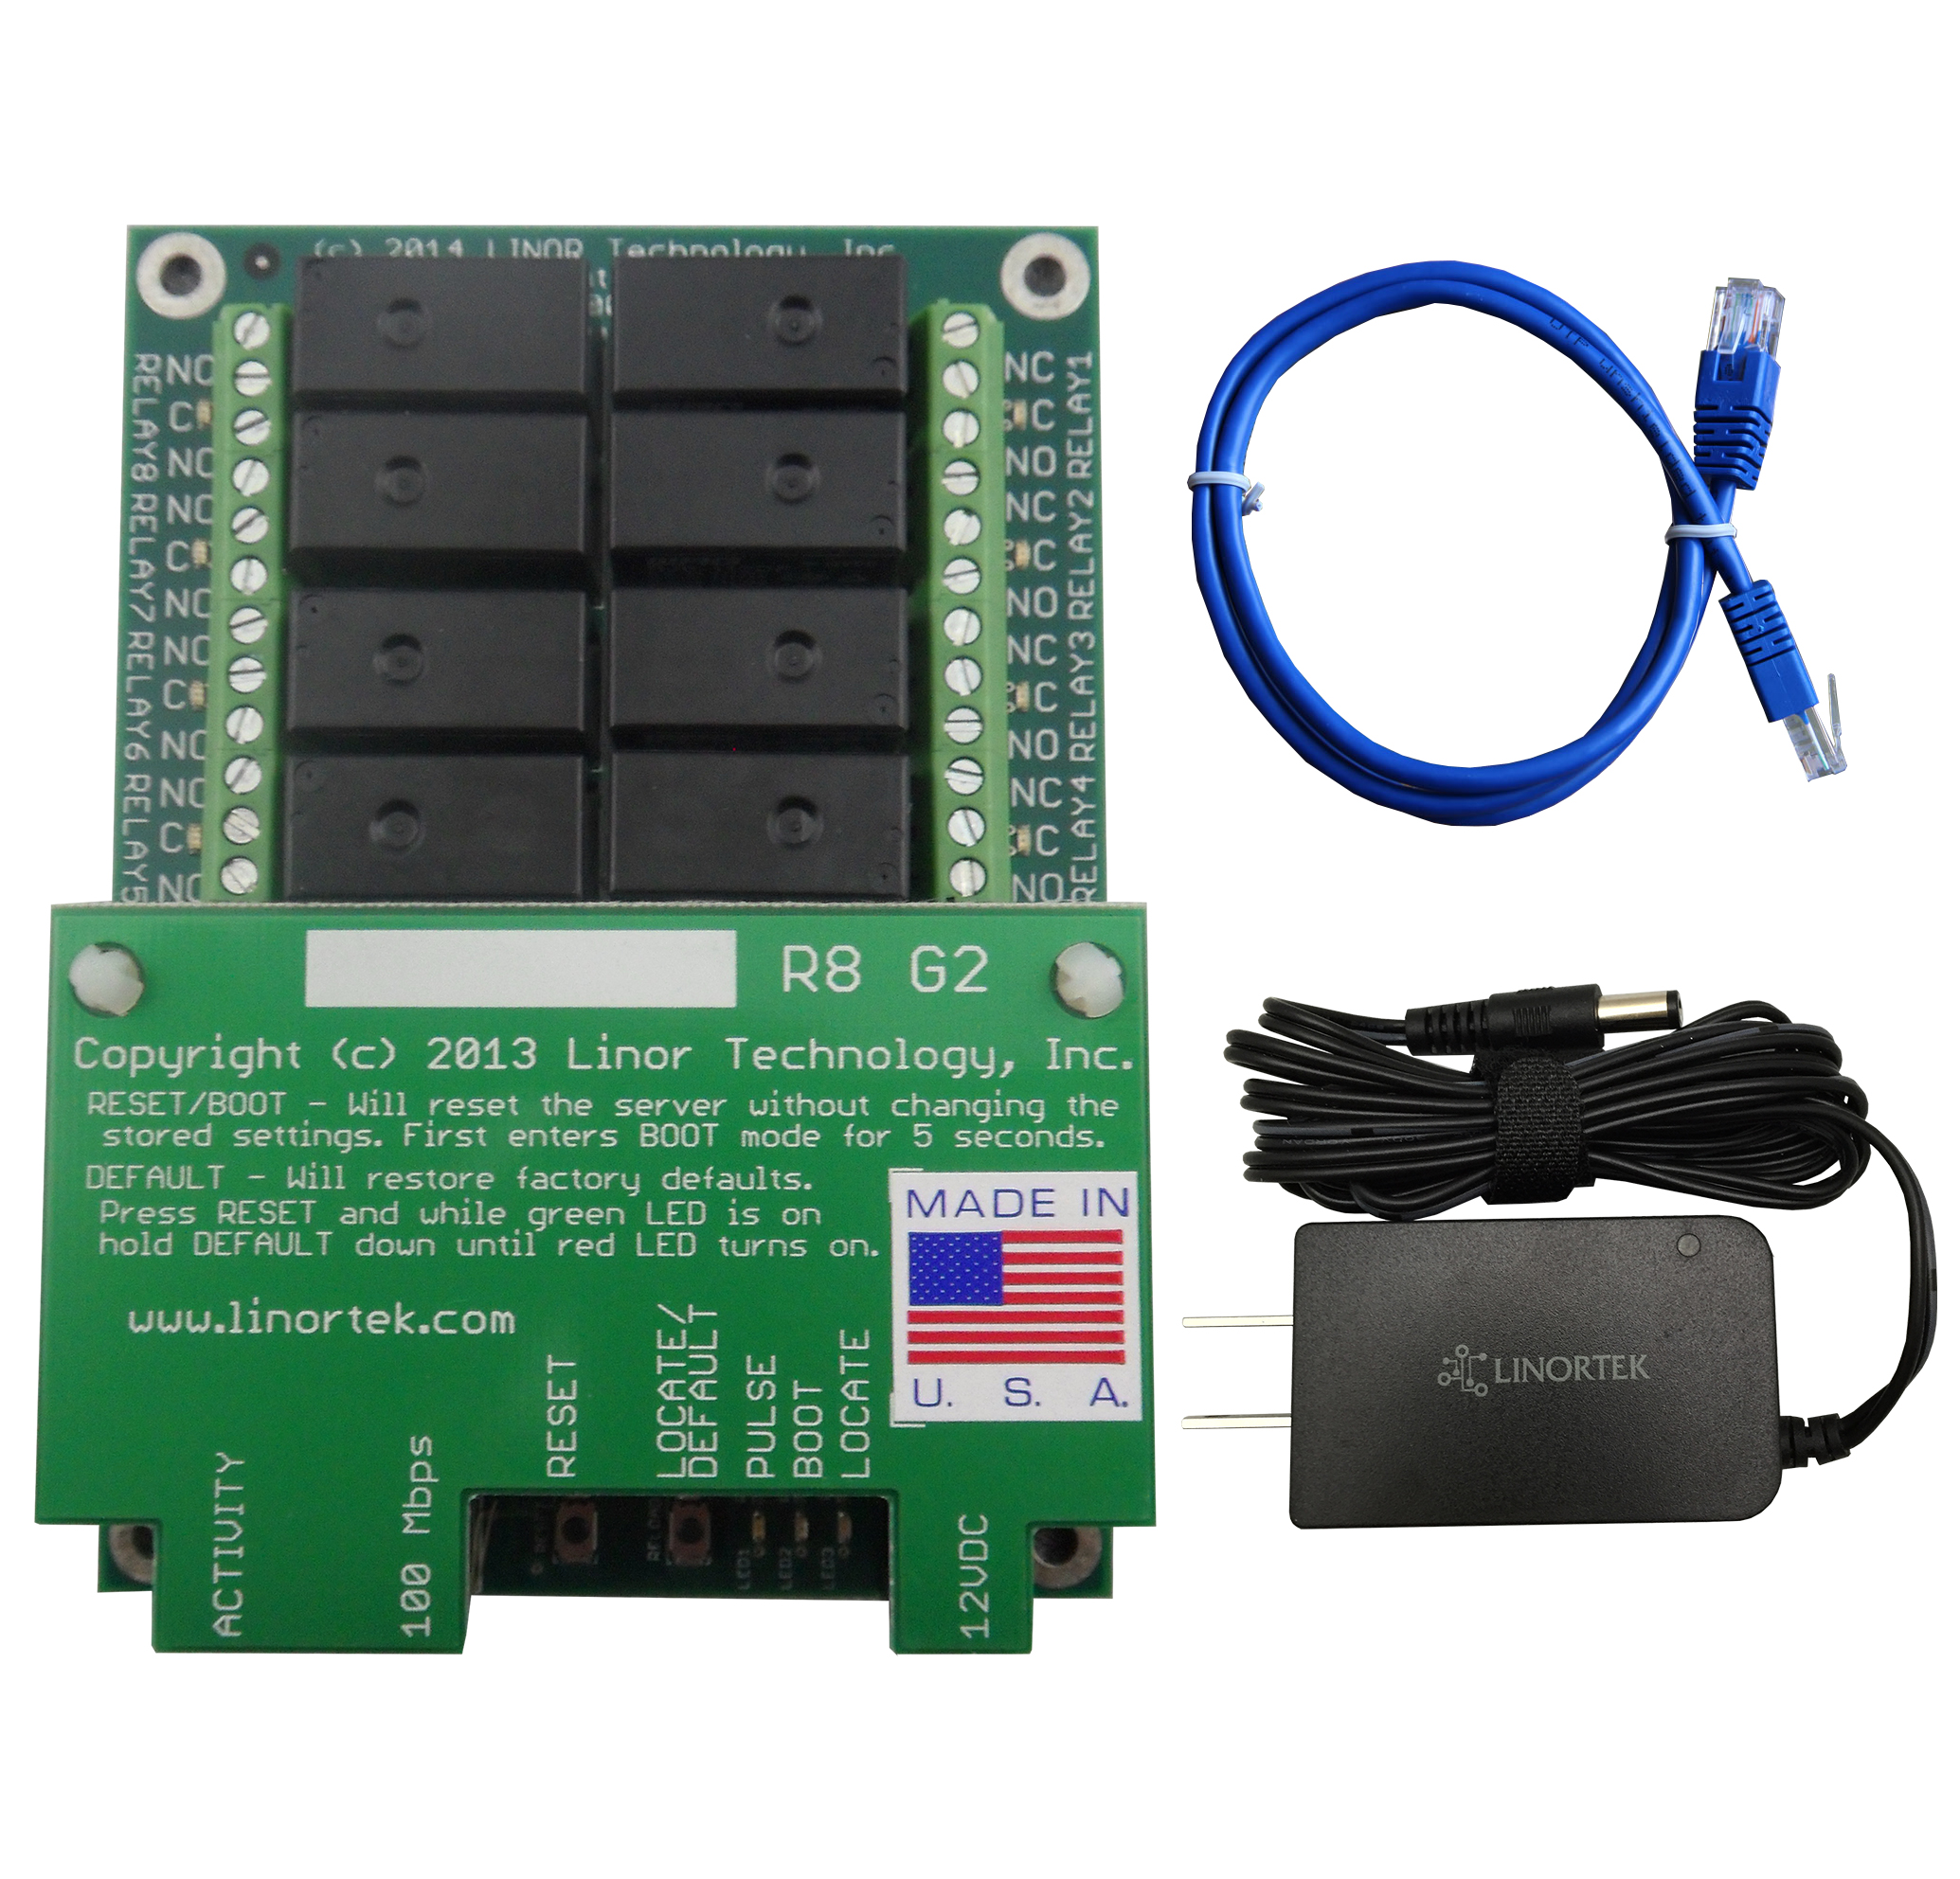 Netbell-8 TCP/IP Web-based Bell Ringer Network Bell Controller for School / Factory Bell System with Up to 500 Event Schedules